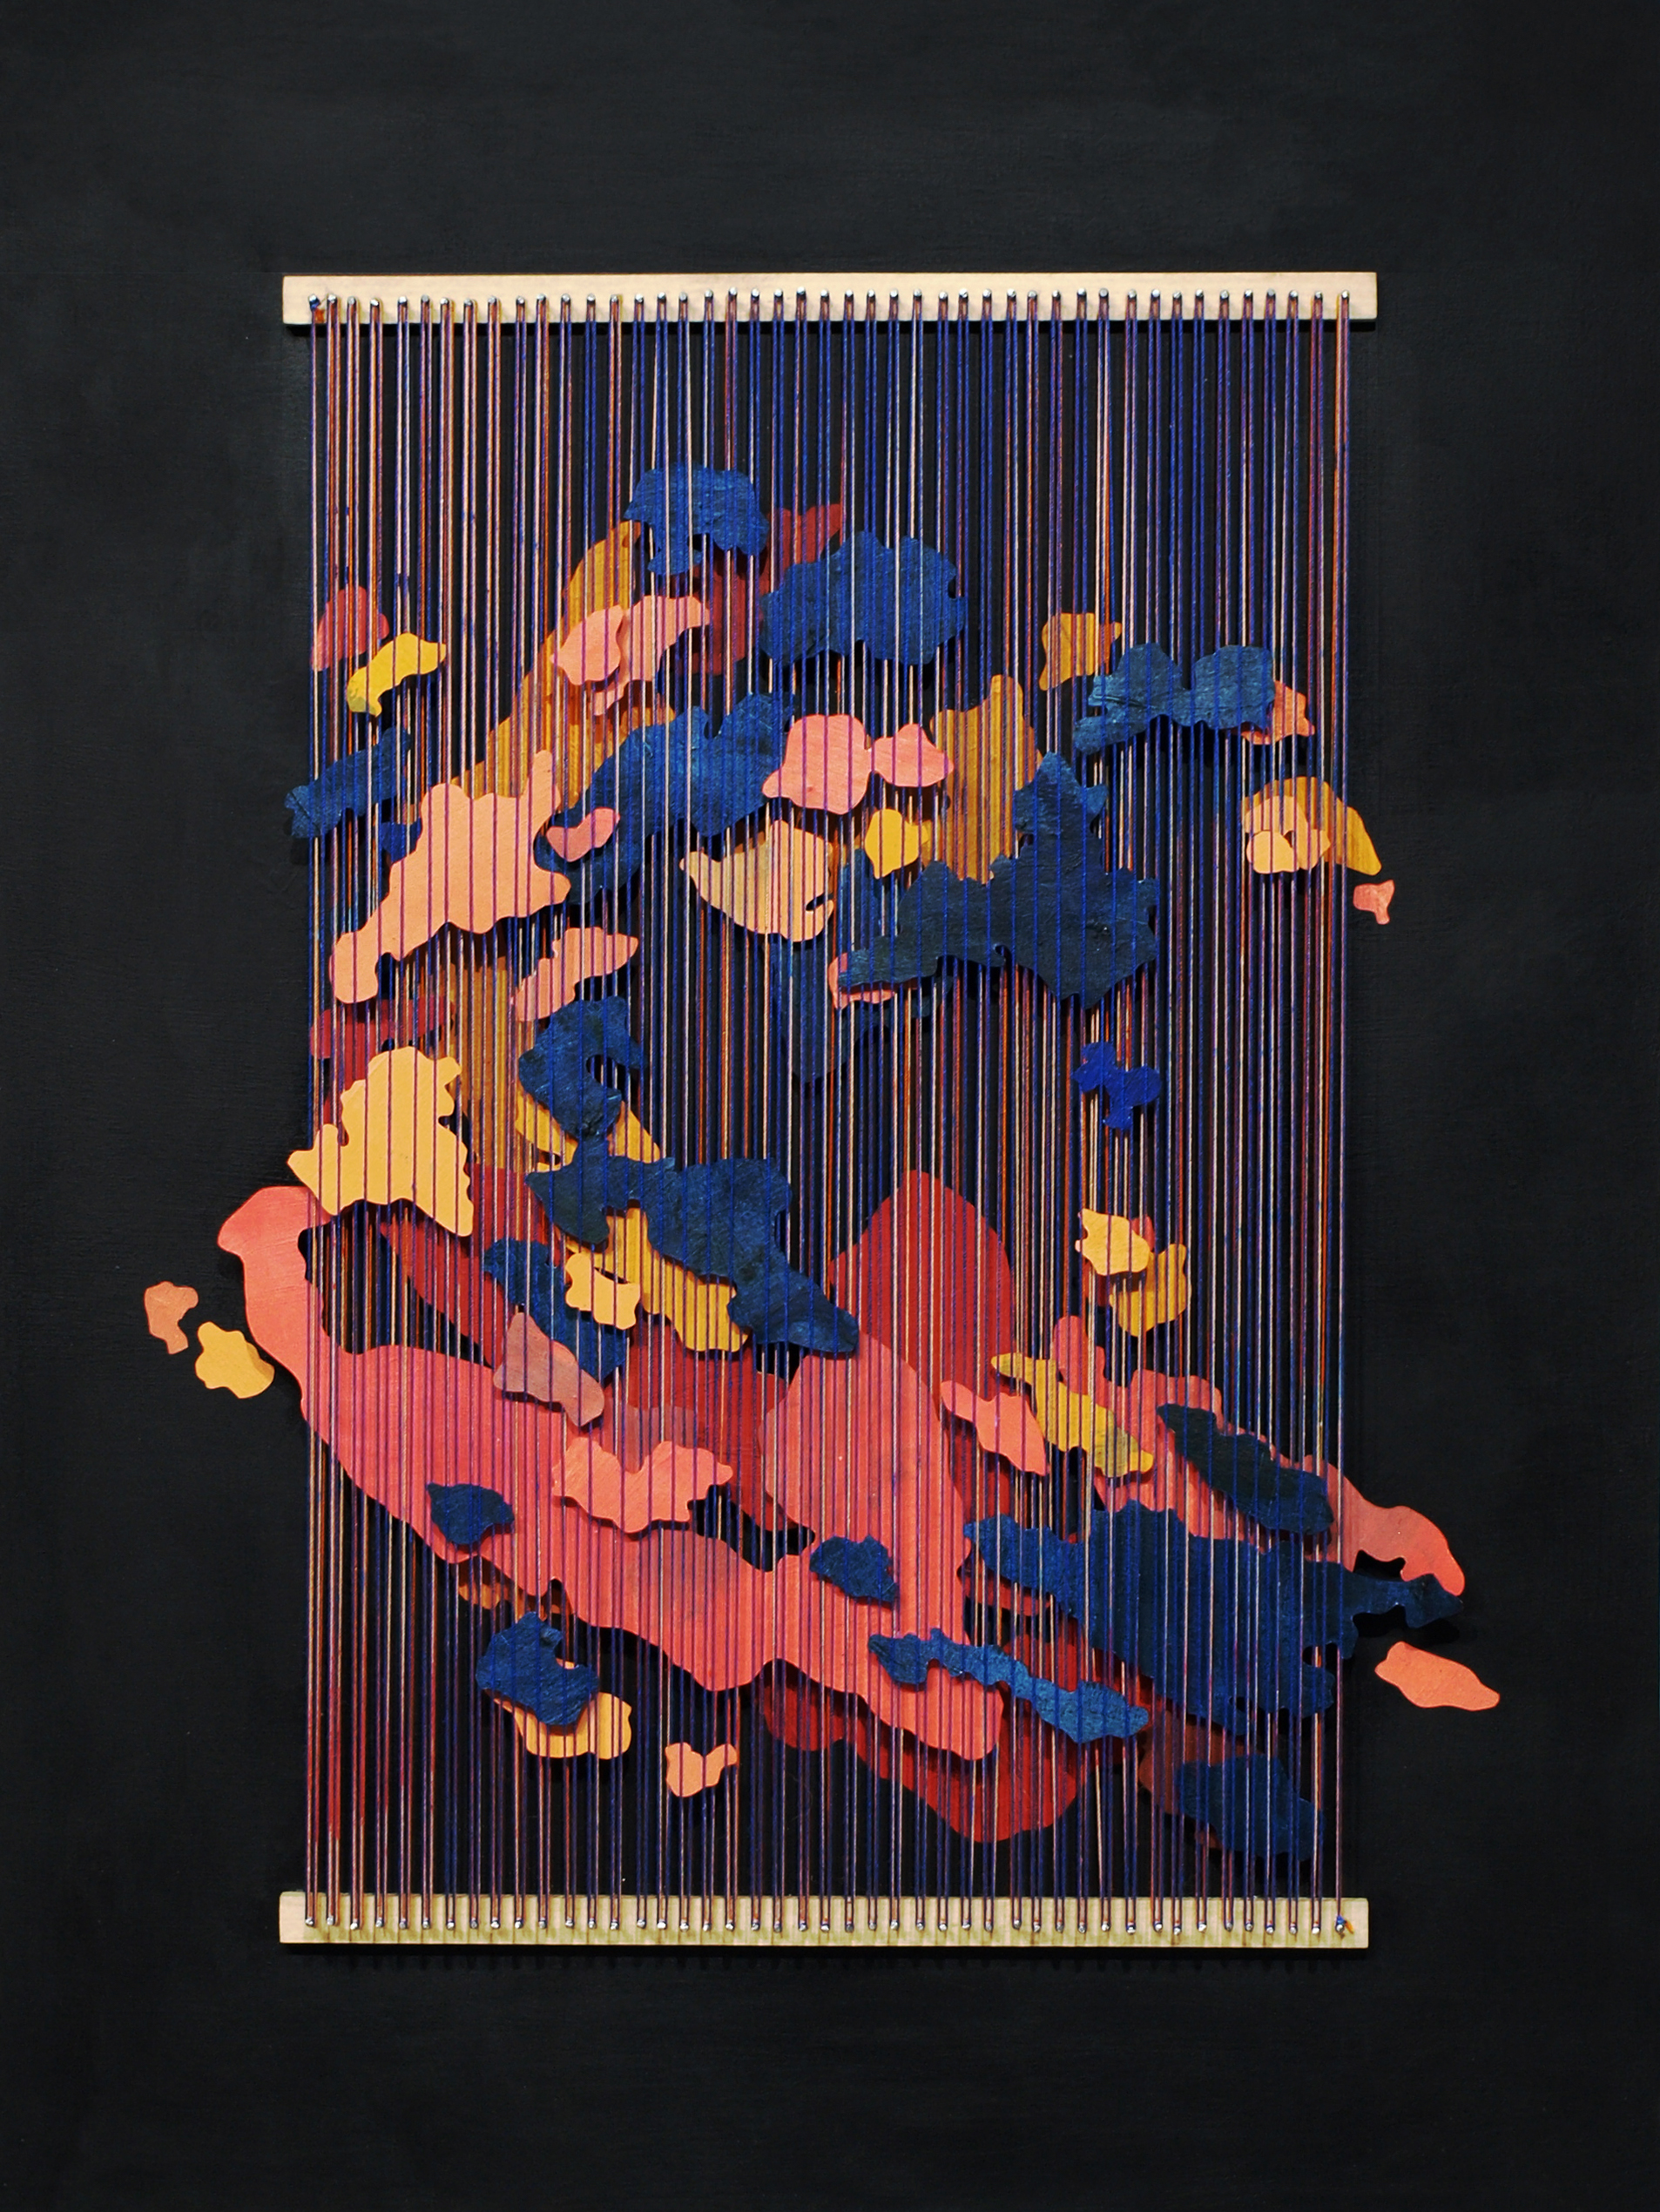 Tegan Brozyna Roberts,  Van Brunt , 2019, Painted paper, thread, nails and wood, 24 1/2 x 18 3/4 inches